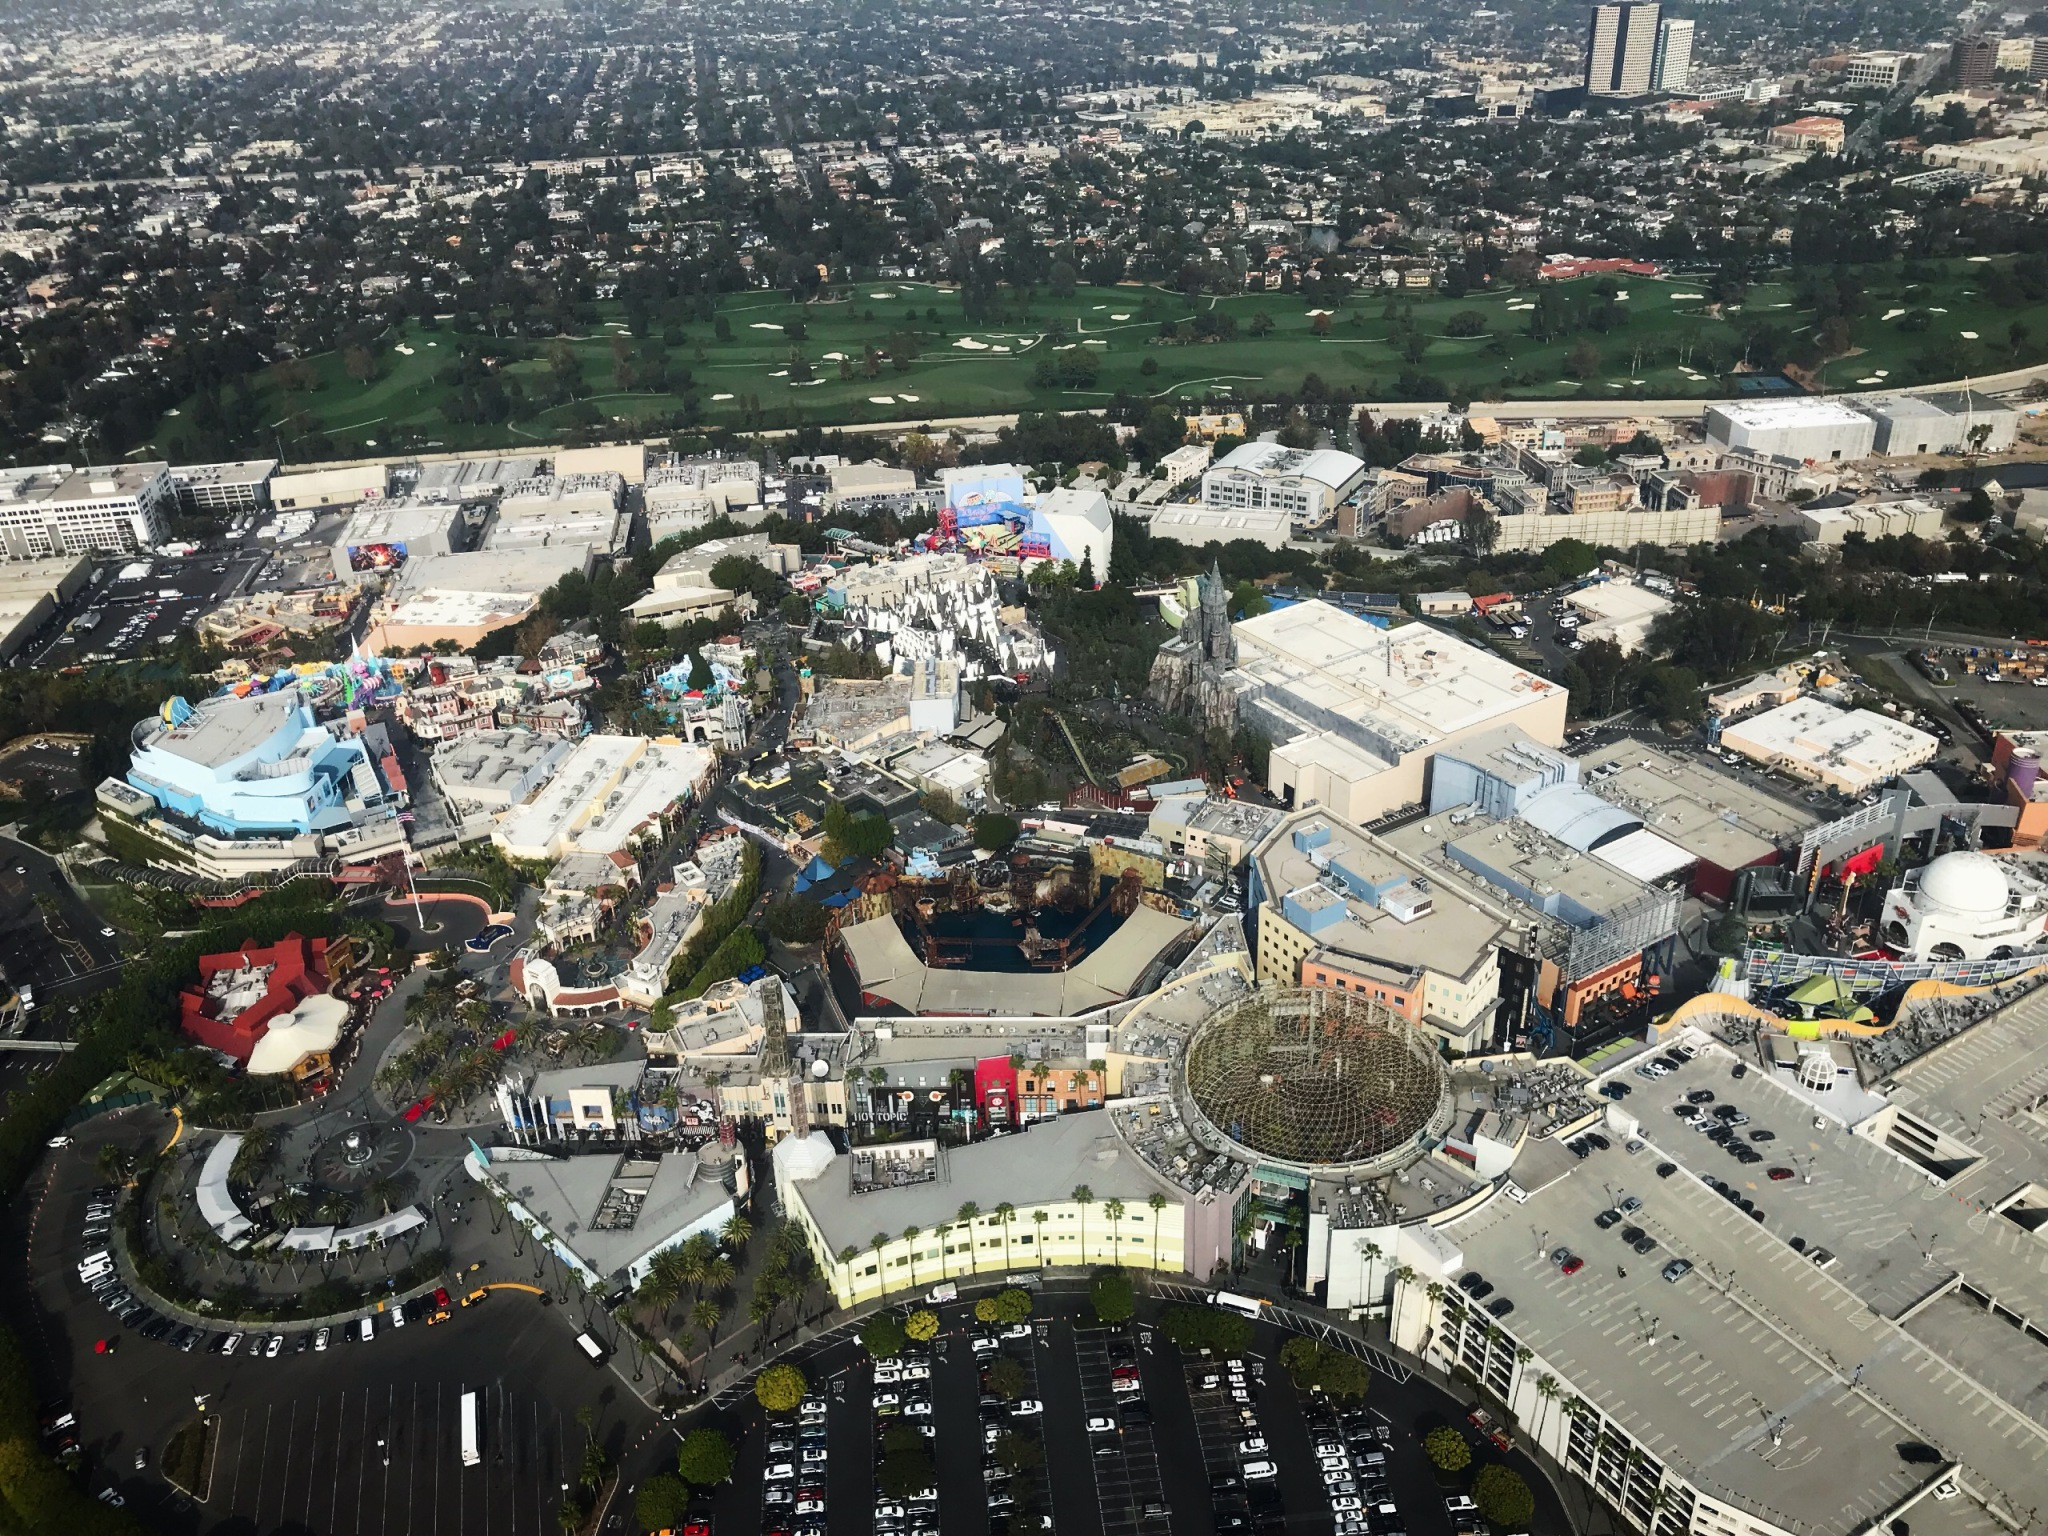 Universal Studios Park view from helicopter